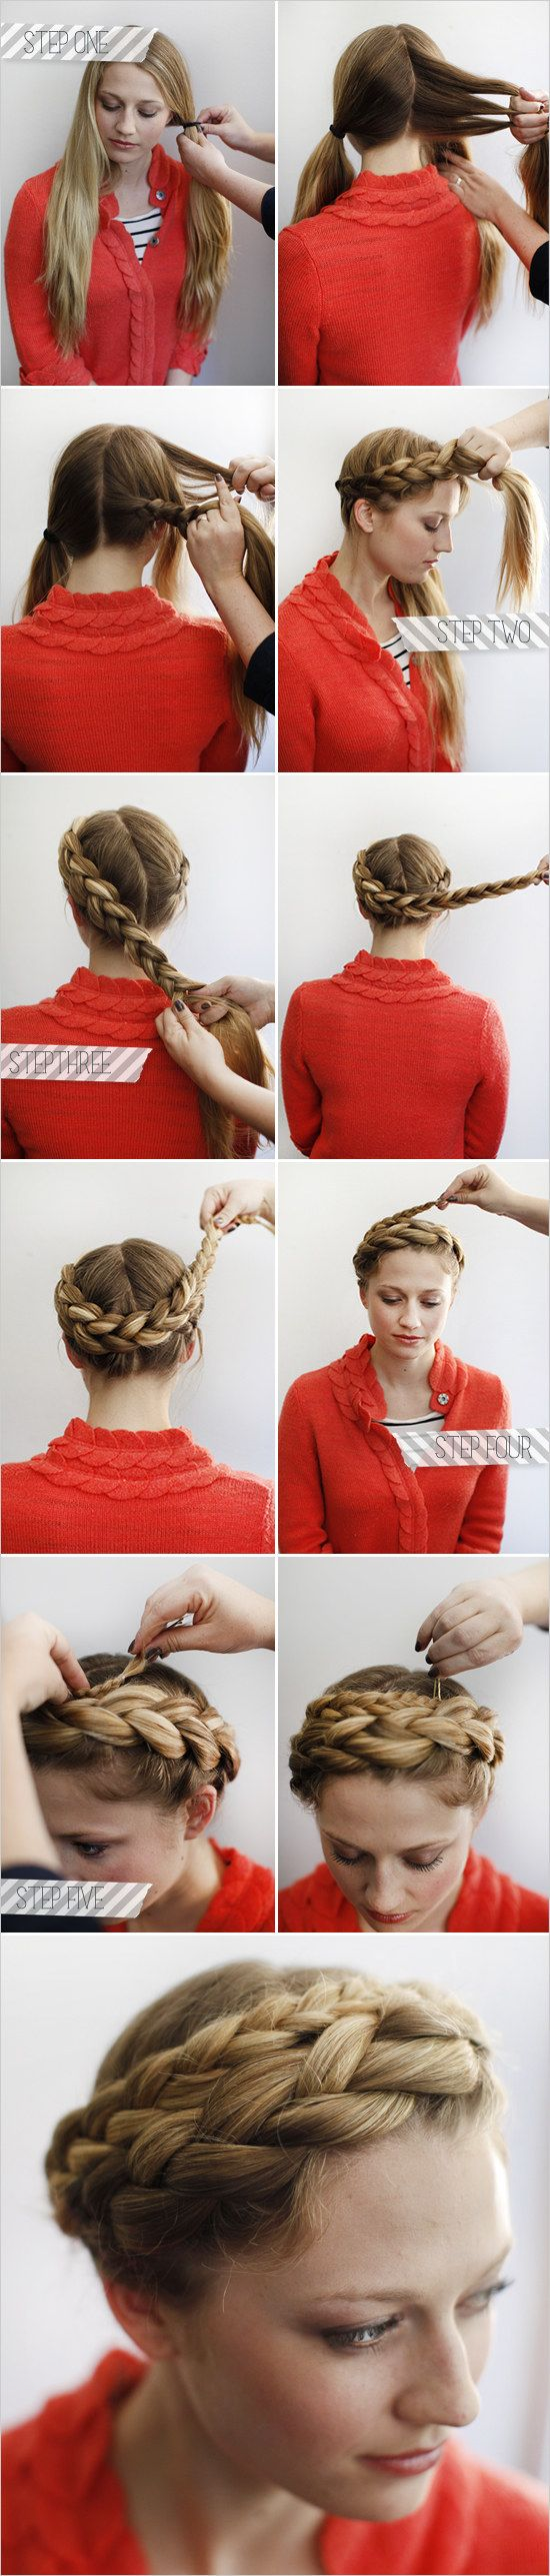 Crown Braids Redux | 23 Creative Braid Tutorials That Are Deceptively Easy: